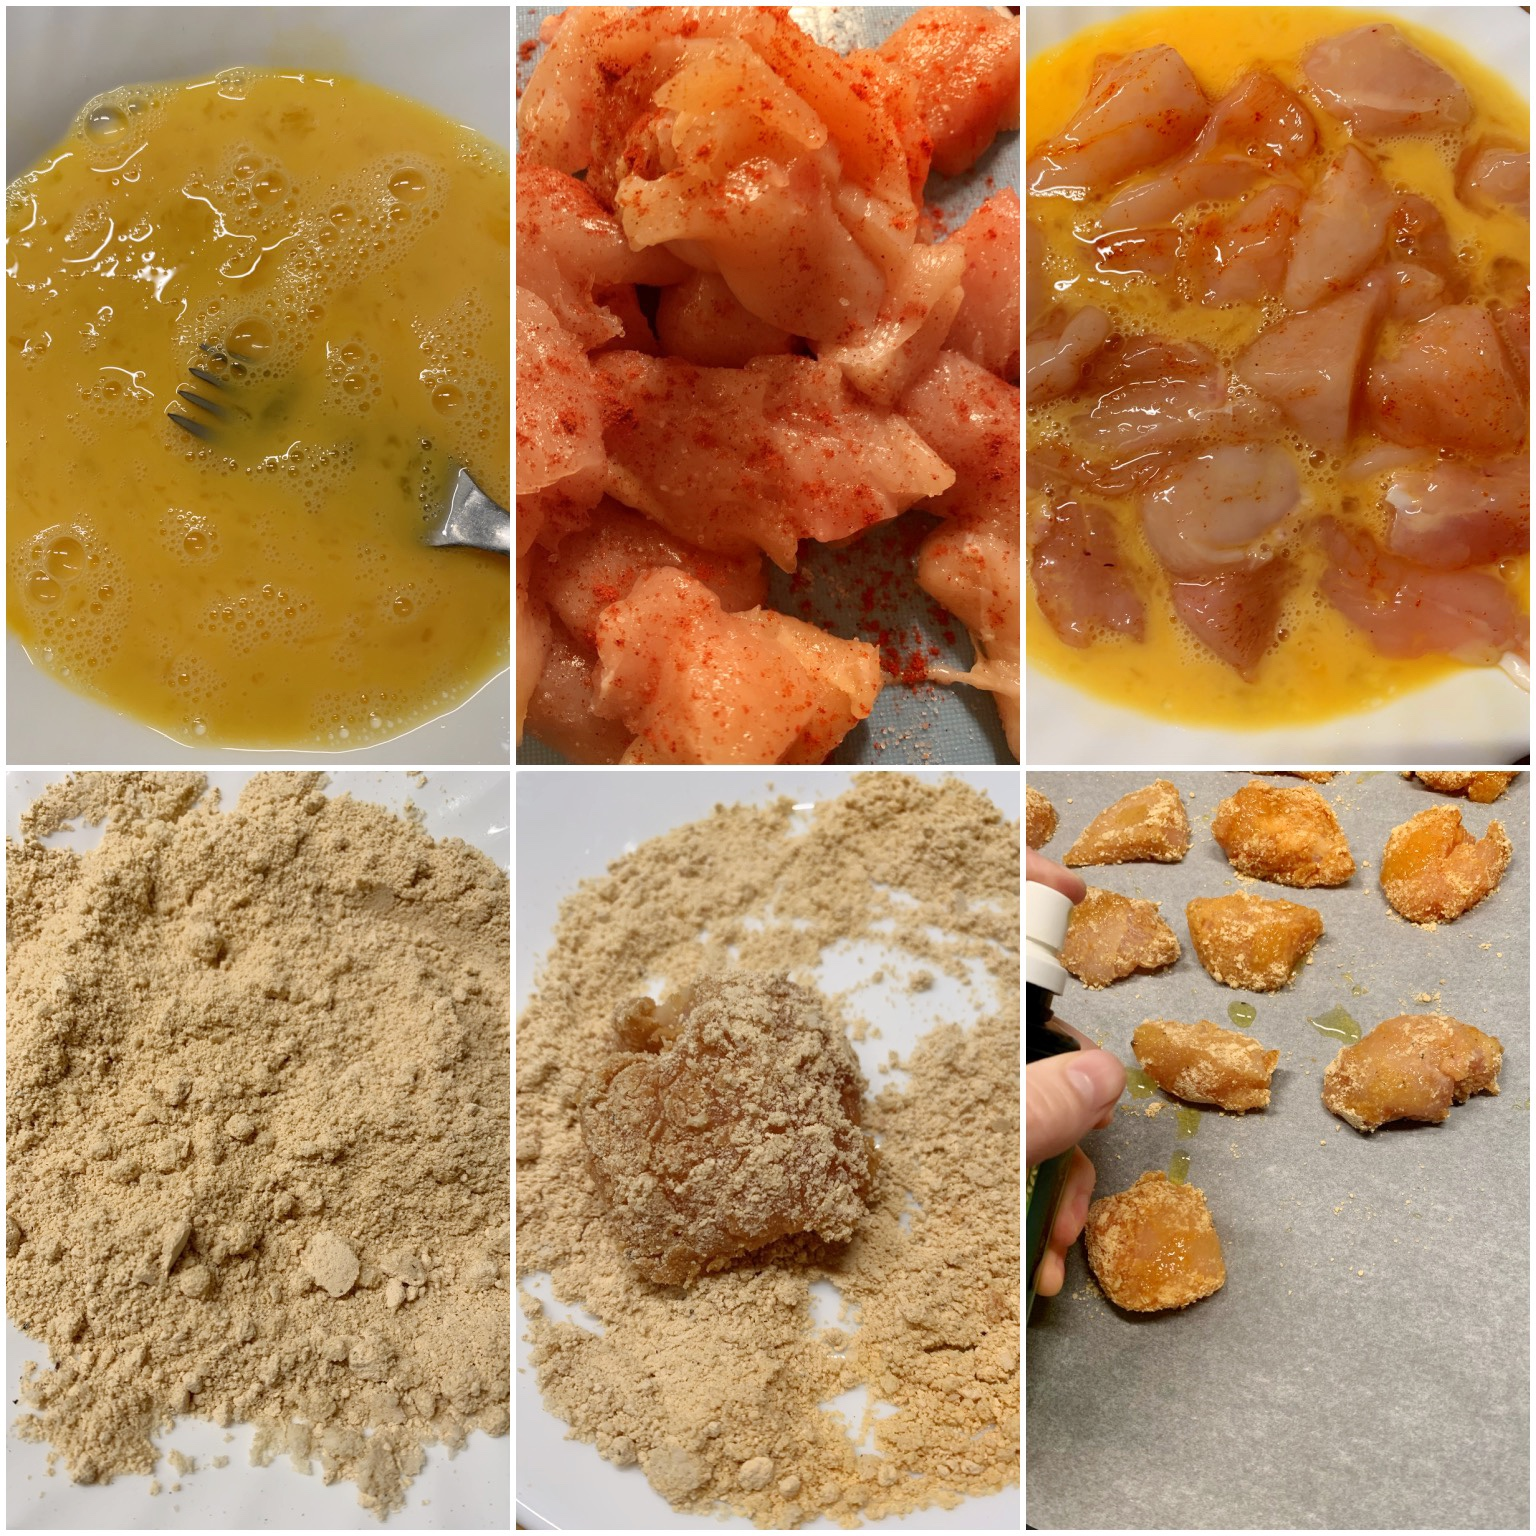 Picture of a procedure to make keto chicken nuggets with whisked eggs, chicken breasts and grain free keto coating with peanut flour and almond flour.